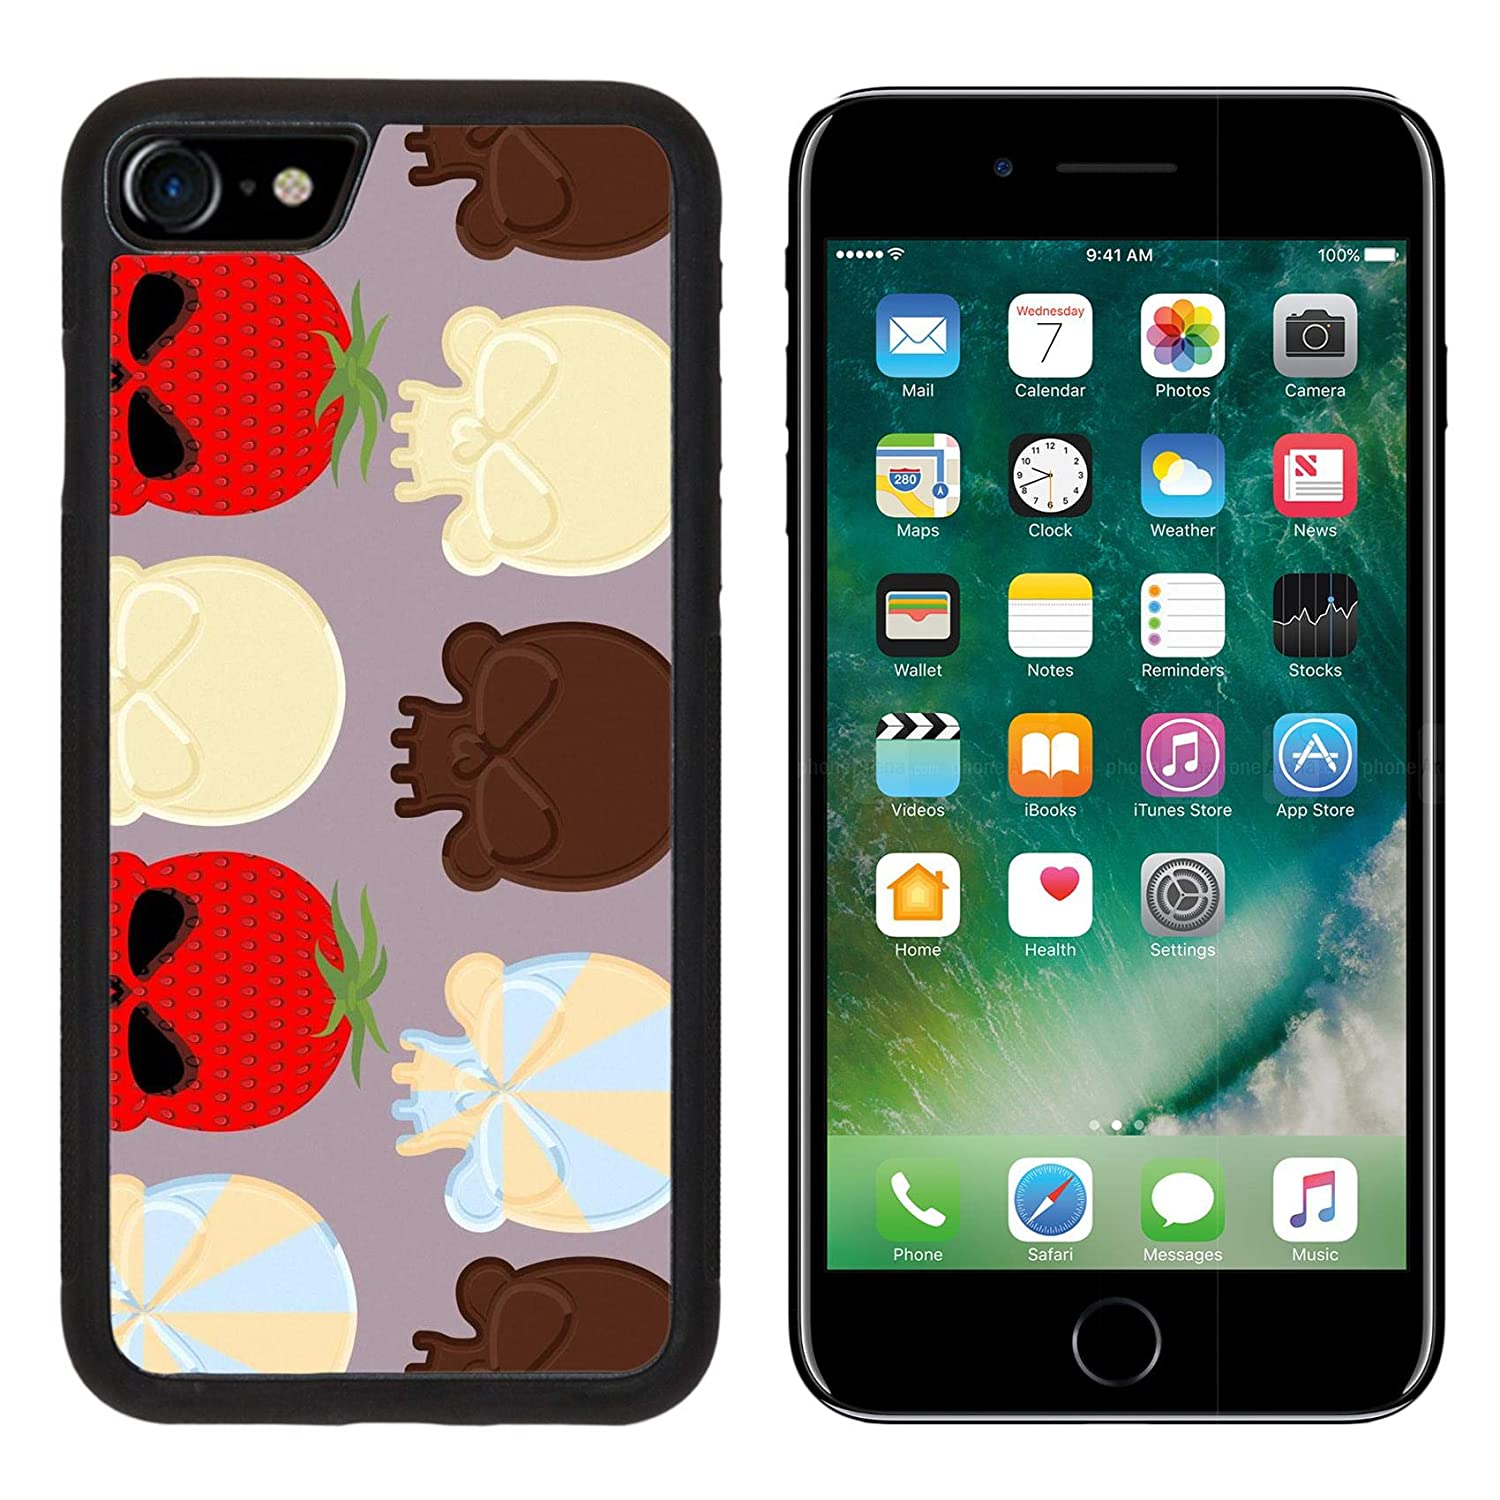 Luxlady Apple iPhone 8 Case Aluminum Backplate Bumper Snap iPhone8 Cases ID: 43128818 Sweet Candy Skulls Seamless Pattern Head Skeleton Made of Chocolate and strawb